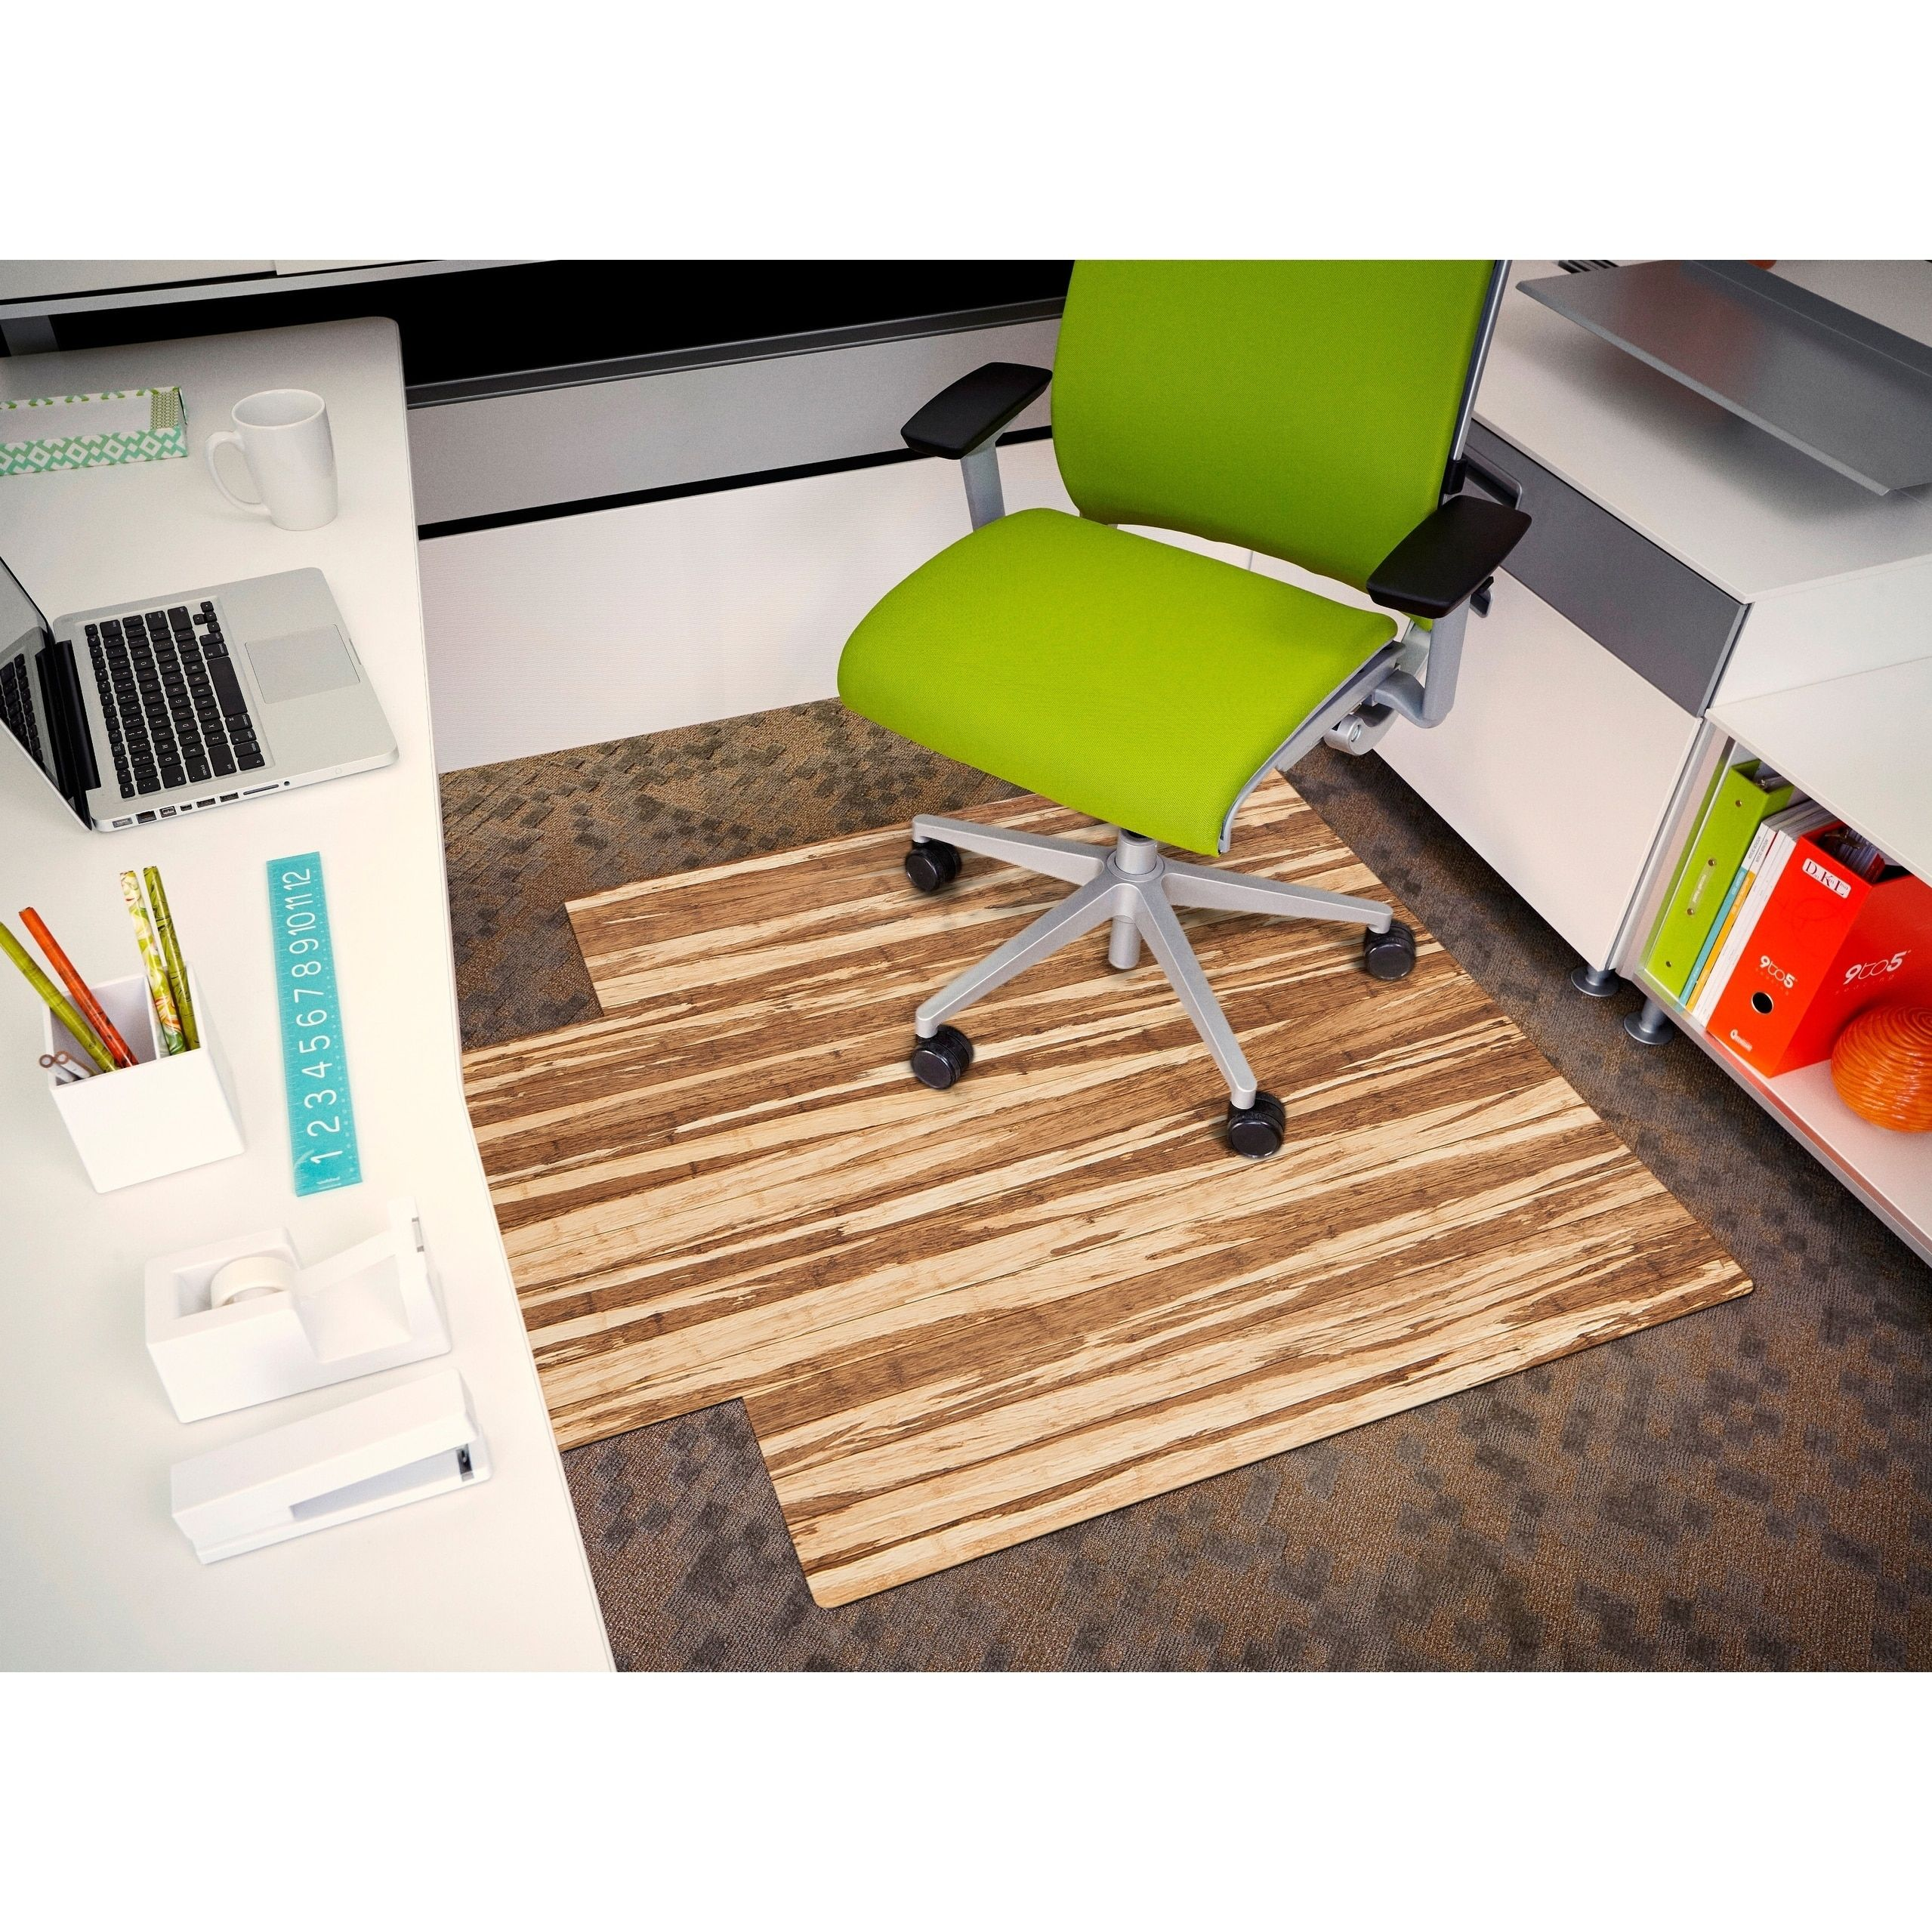 Strand Bamboo Roll Up Chair Mat With Lip 44 X 52 Brown Products In 2019 Chair Mats Office Chair Mat Chair